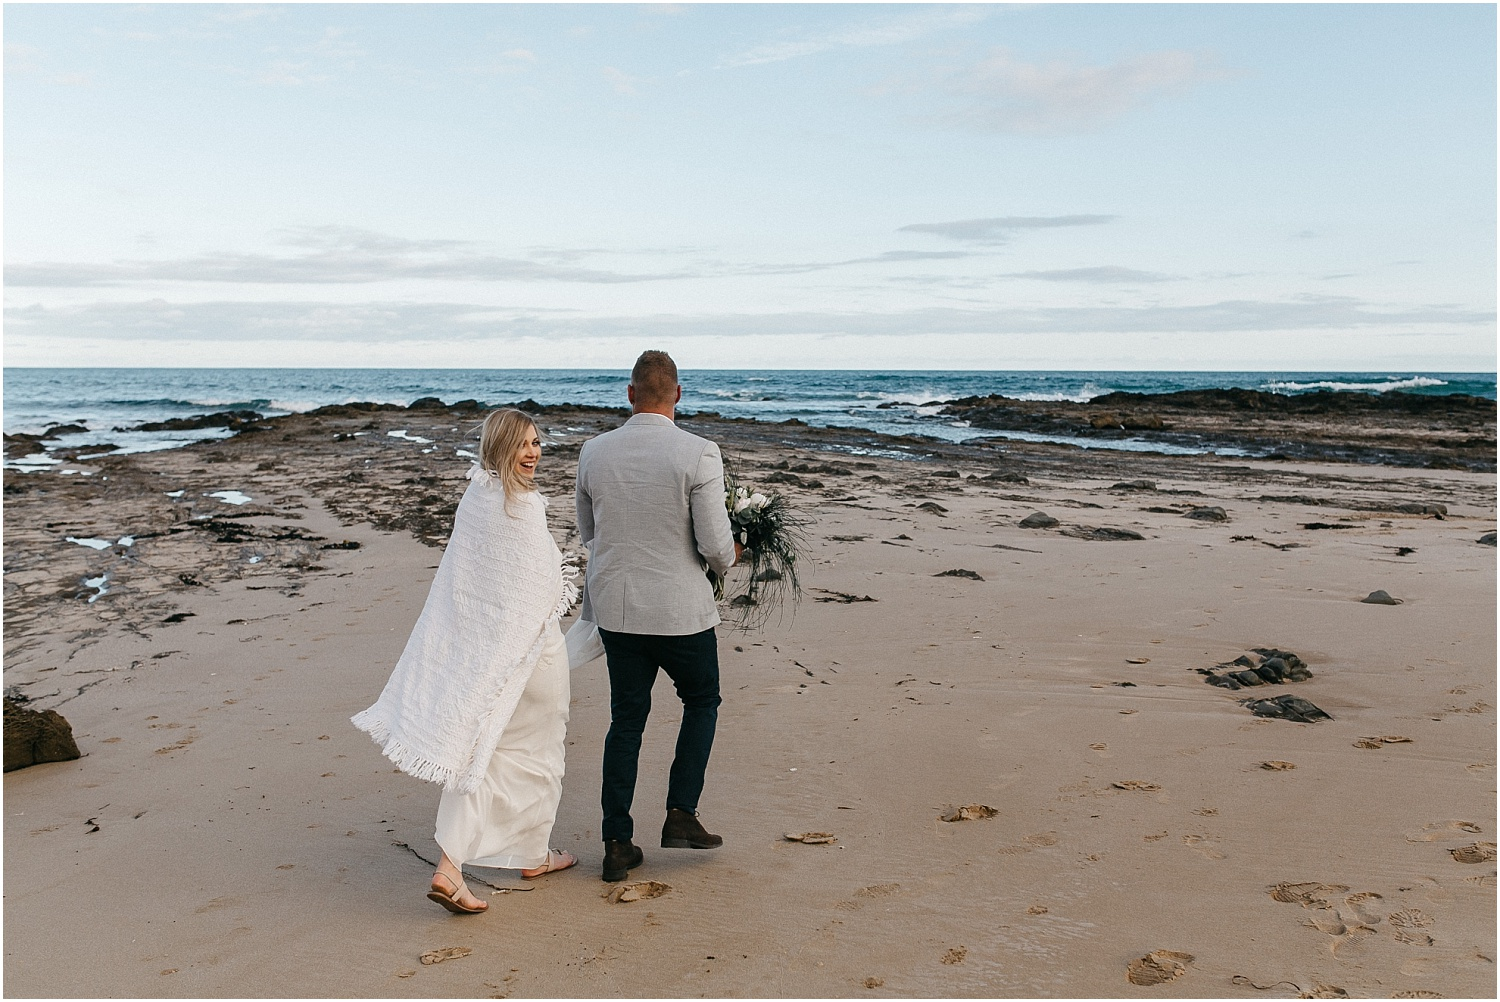 Renee and Ash's real elopement in Lorne on the Great Ocean Roadwith the ceremony at erskin falls._0098.jpg